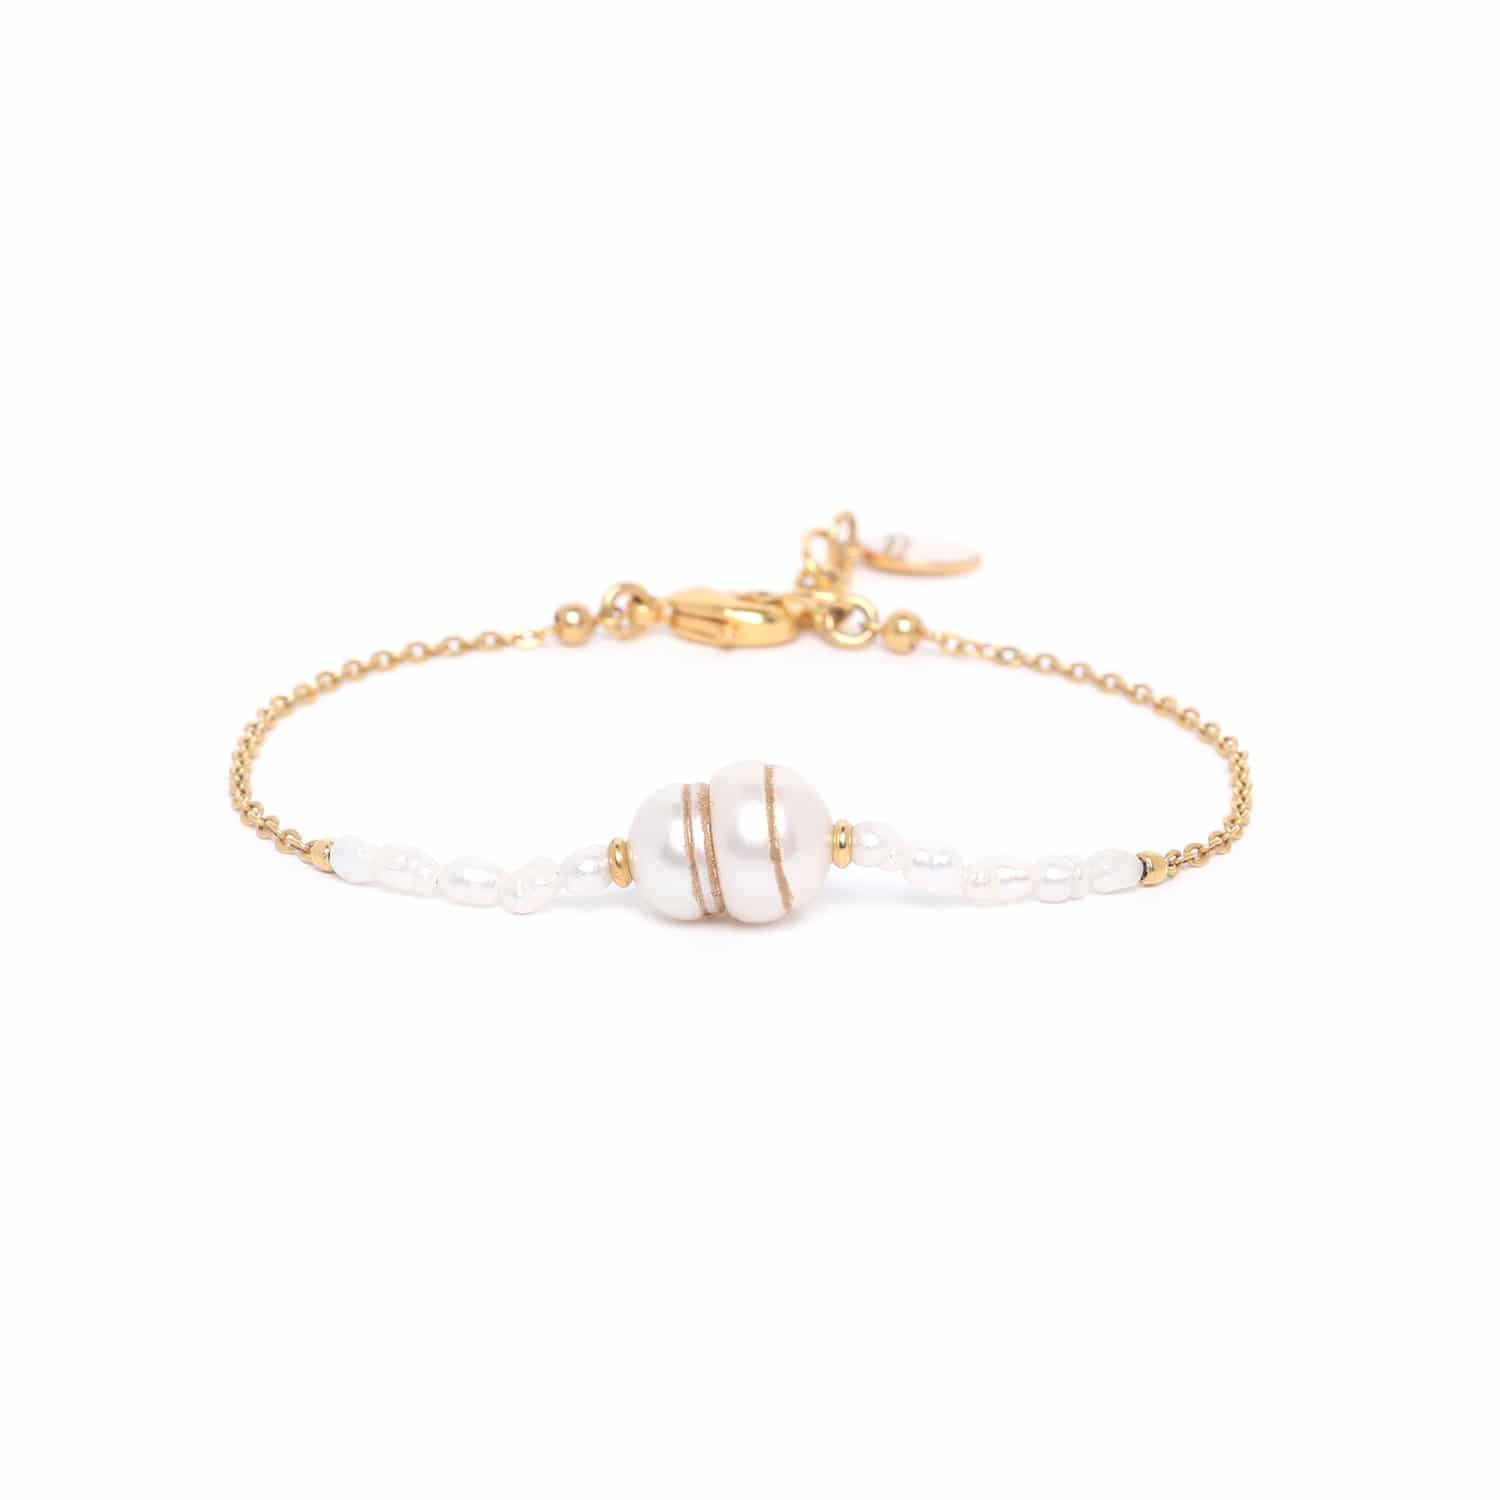 SWEET PEARL big pearl bracelet with gold chain